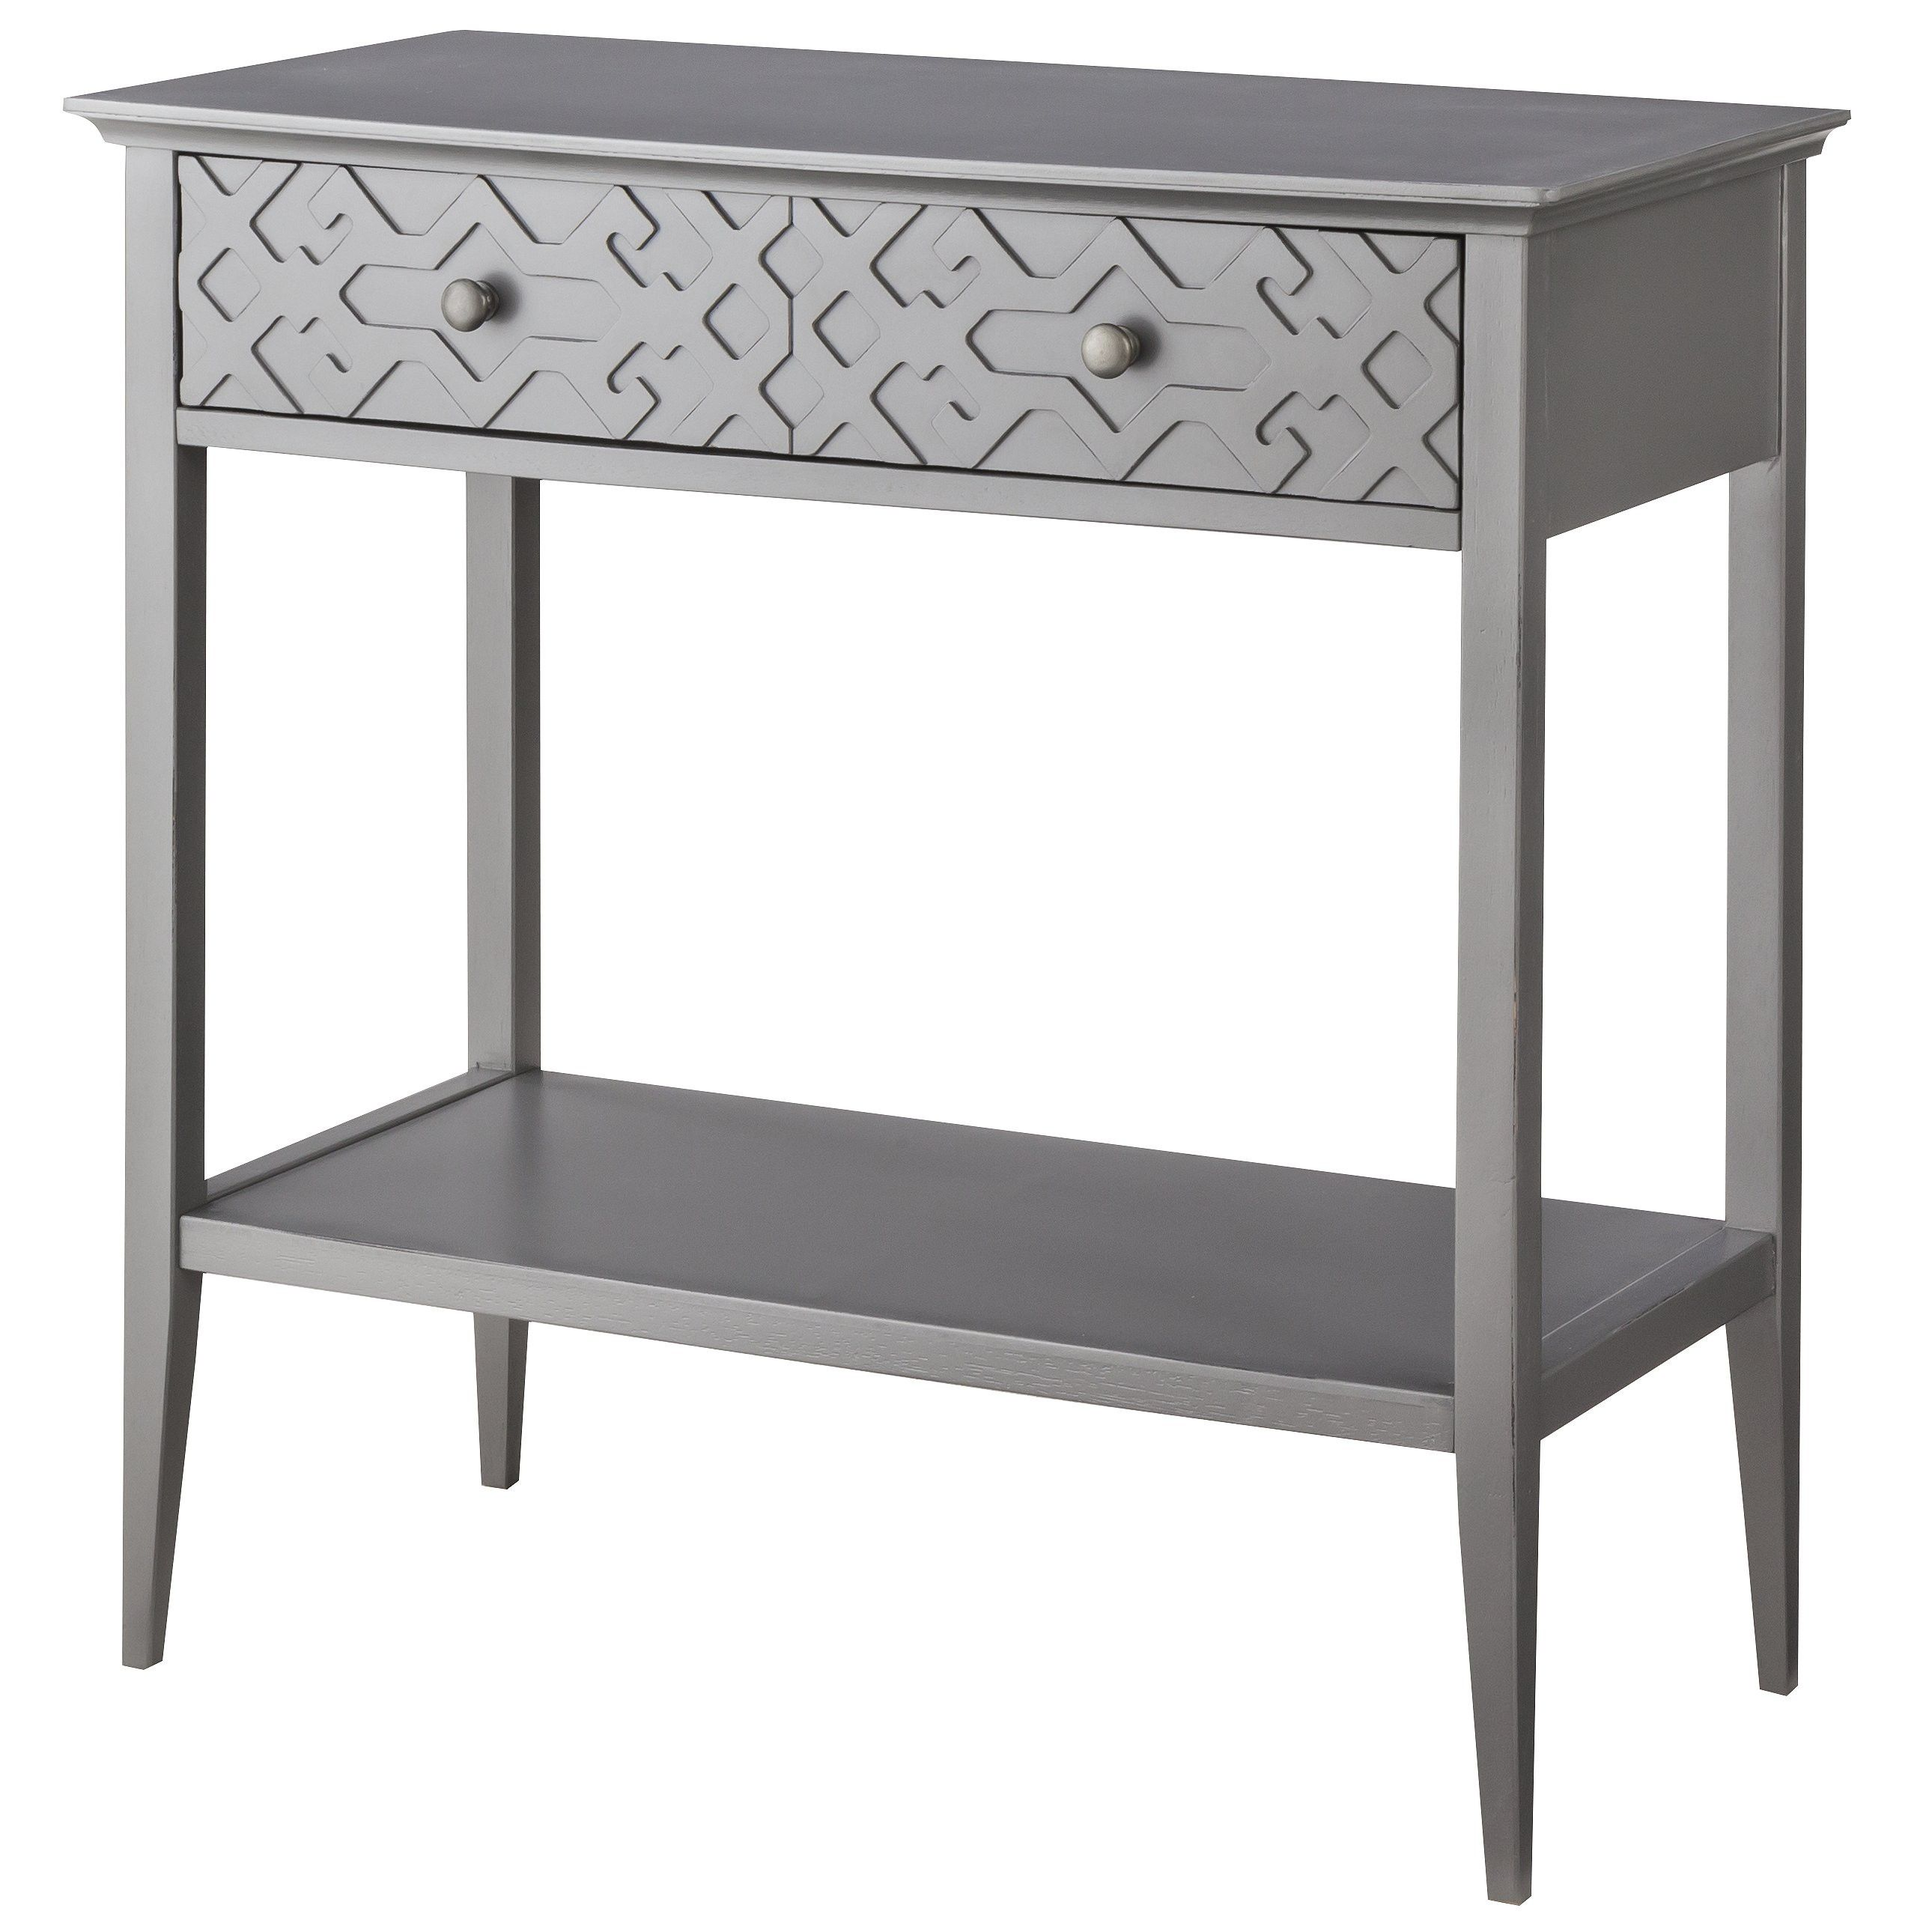 threshold fretwork console table target hardecore accent teal order legs wrought iron coffee industrial cart small bar height patio beer cooler cherry wood night sofa ideas